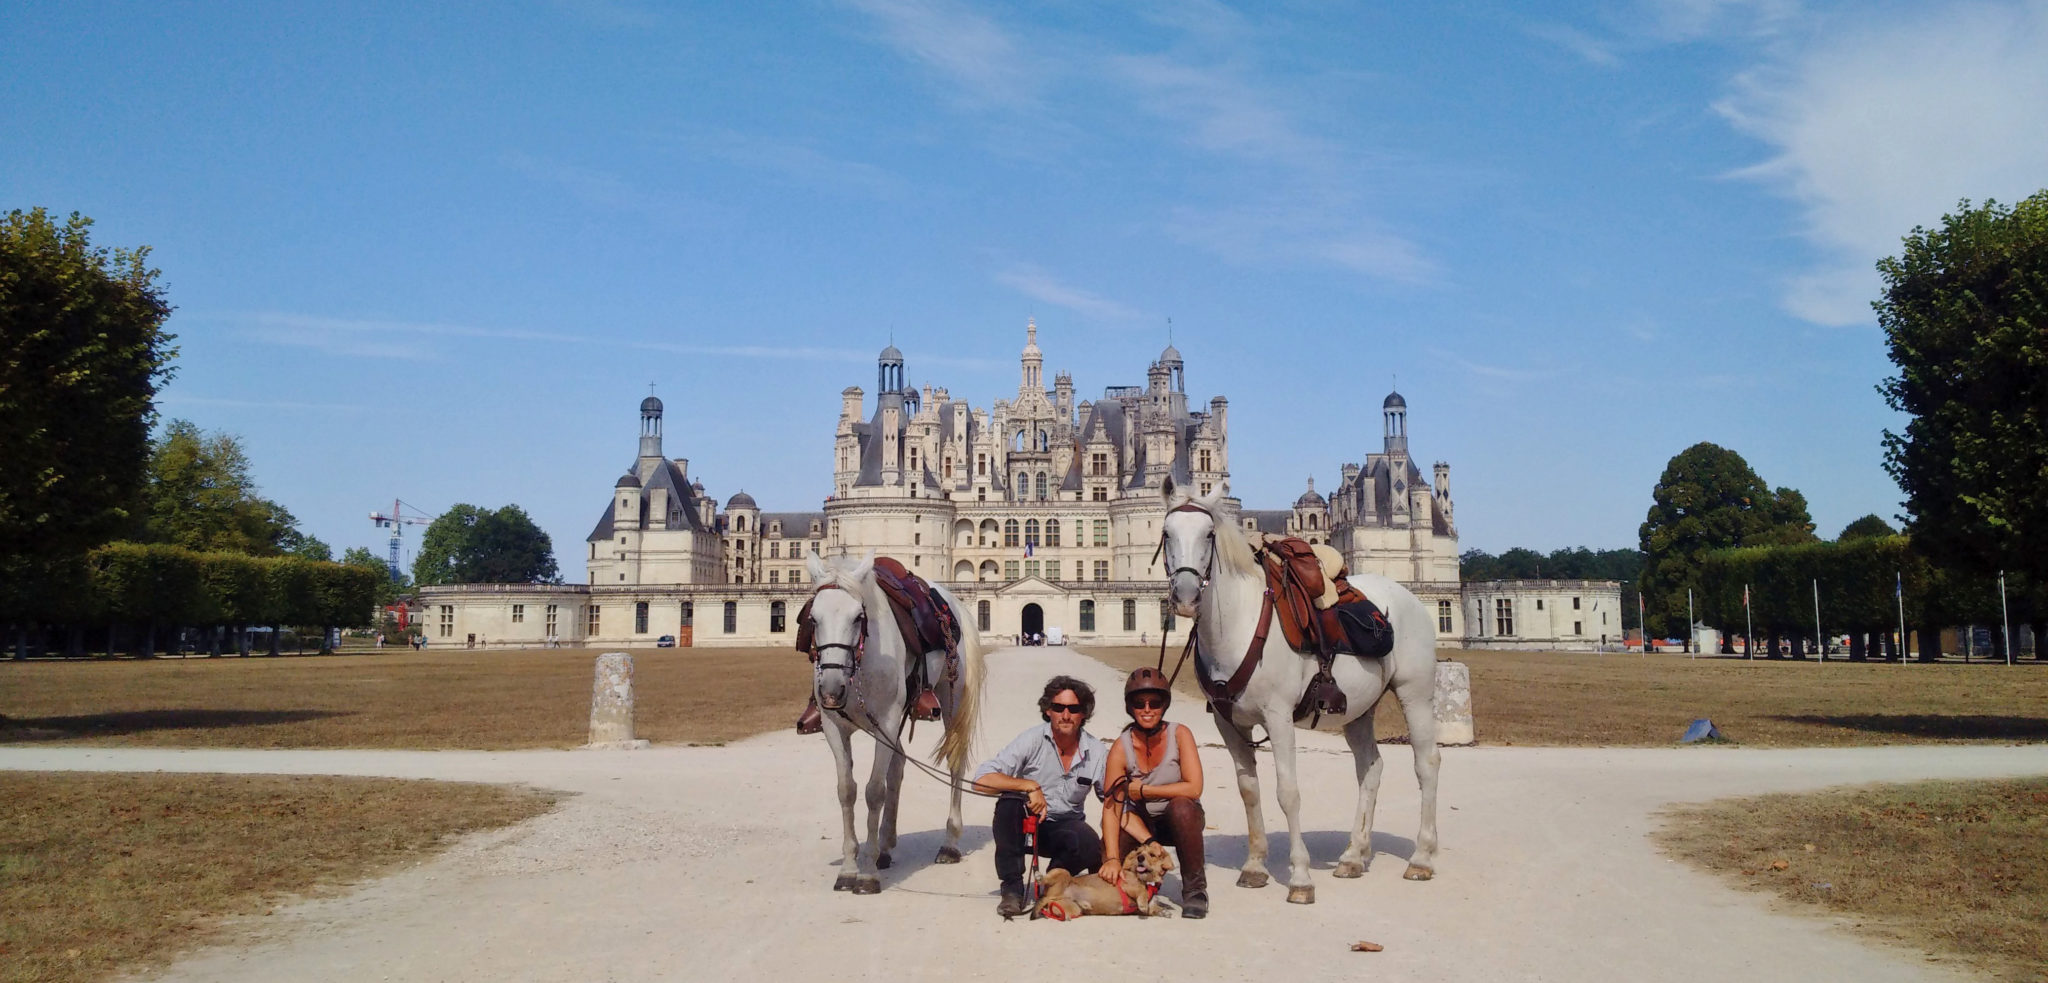 horses and riding in front of french castle horse riding holiday by globetrotting